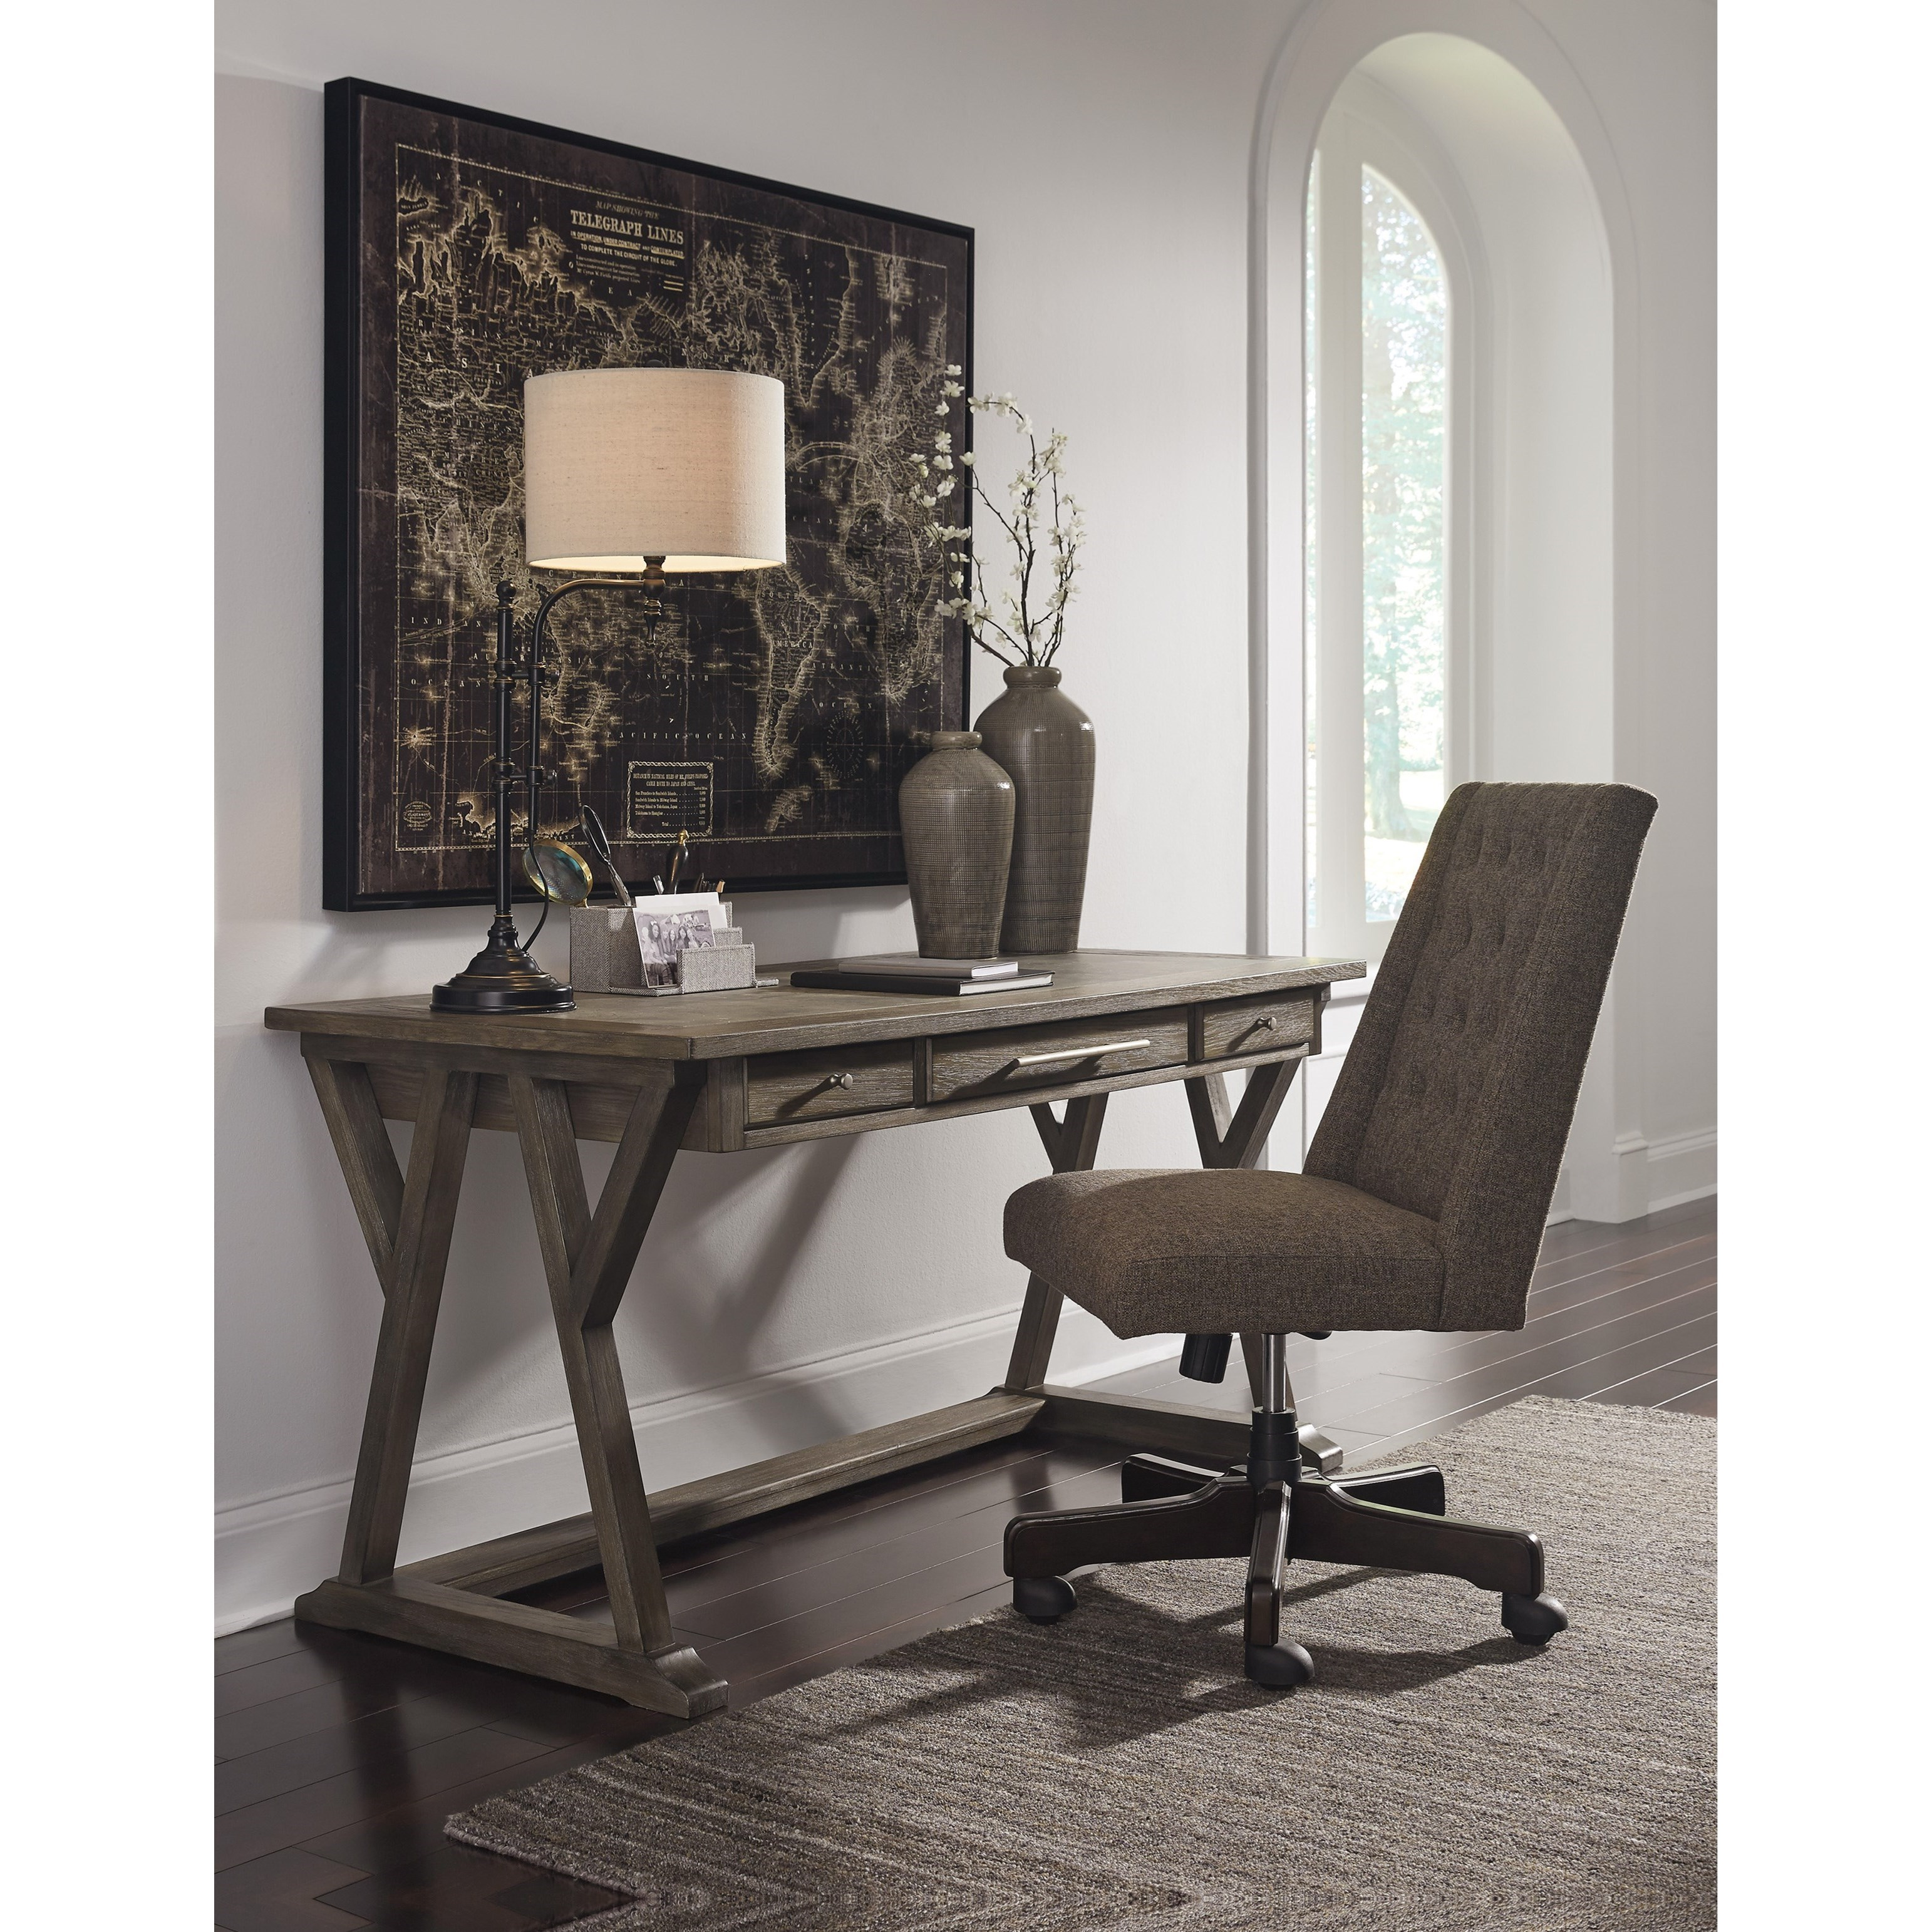 Signature Home Furnishings: Signature Design By Ashley Luxenford Relaxed Vintage Home